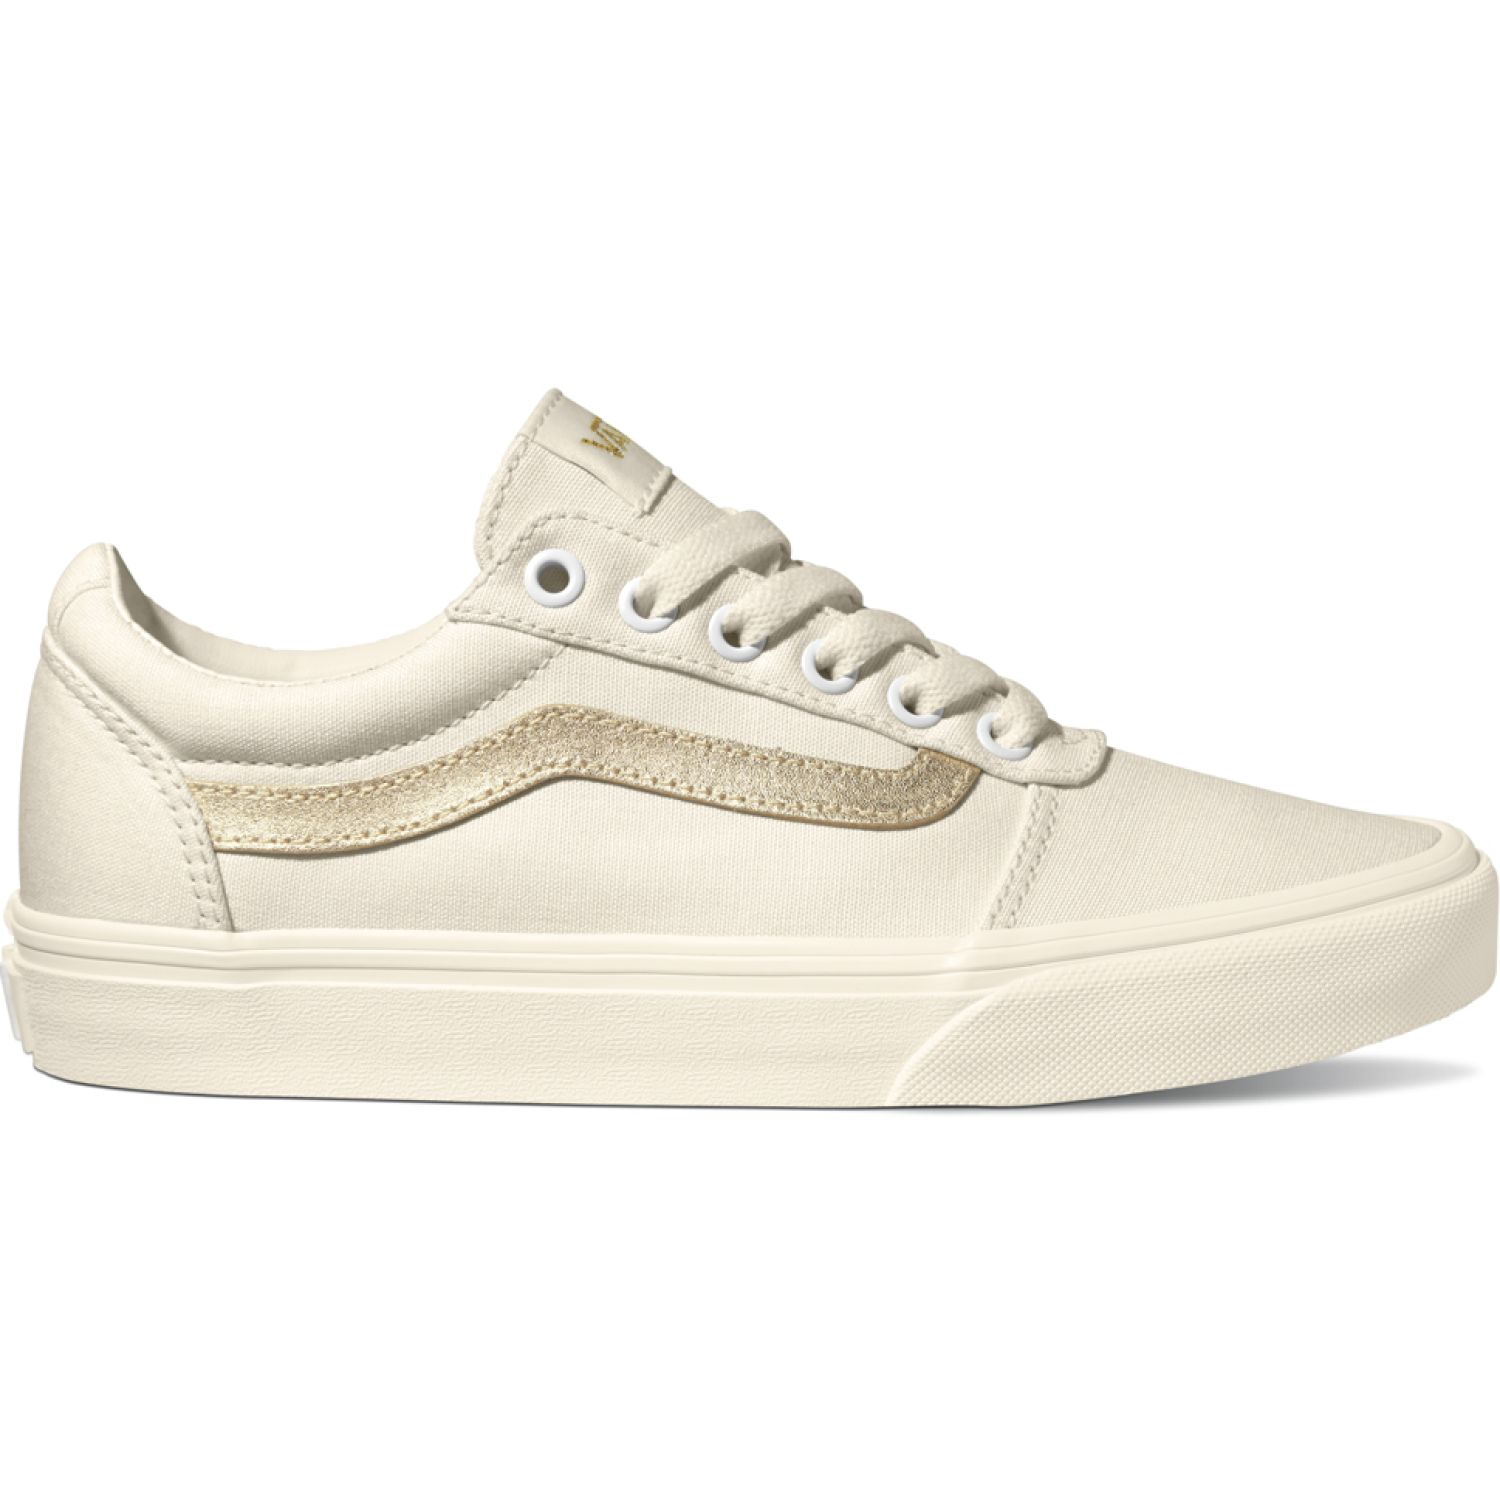 Vans ward Beige Walking